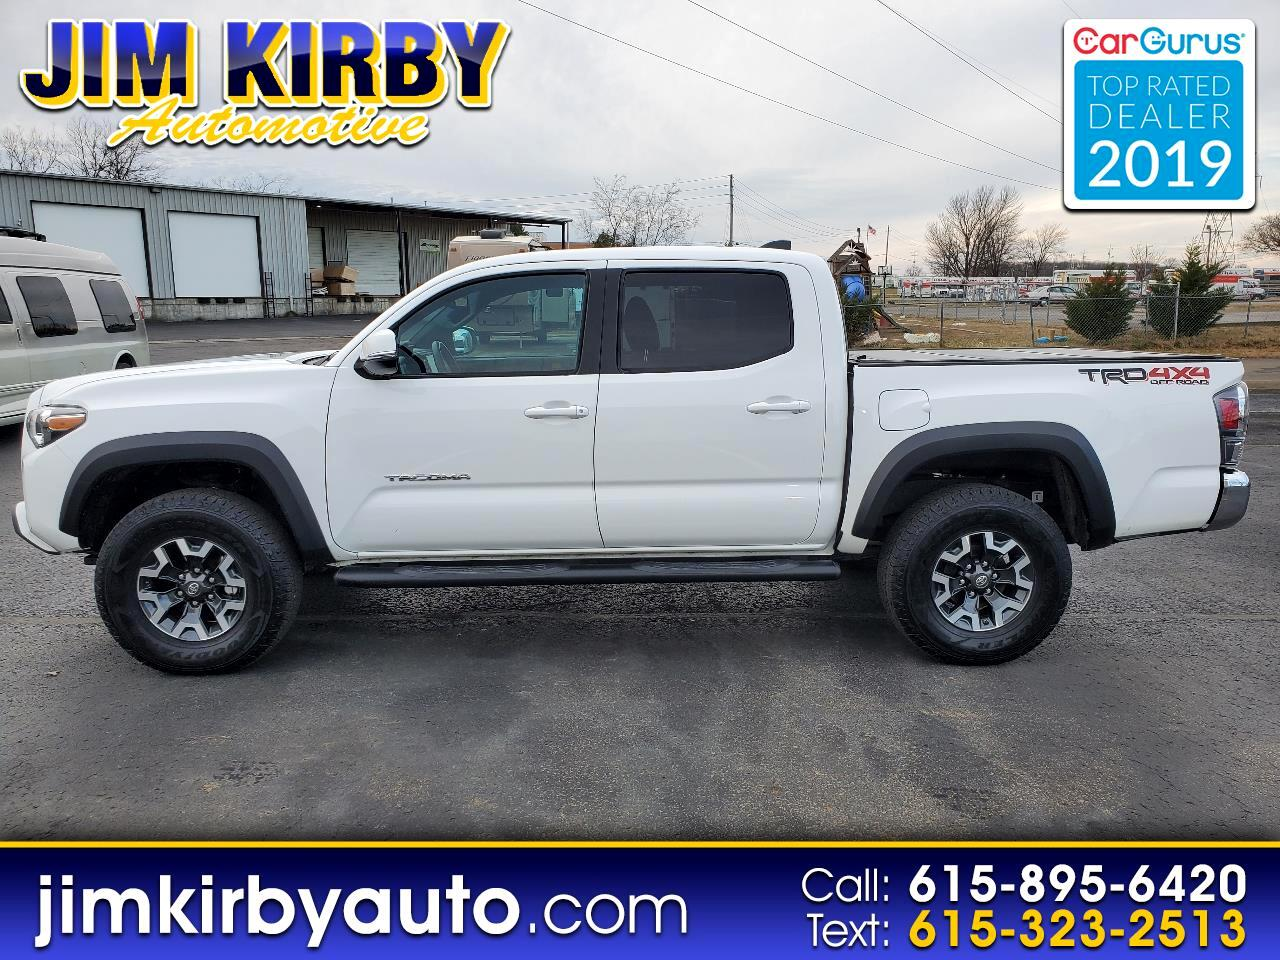 Toyota Tacoma SR5 Double Cab Long Bed V6 6AT 4WD 2020